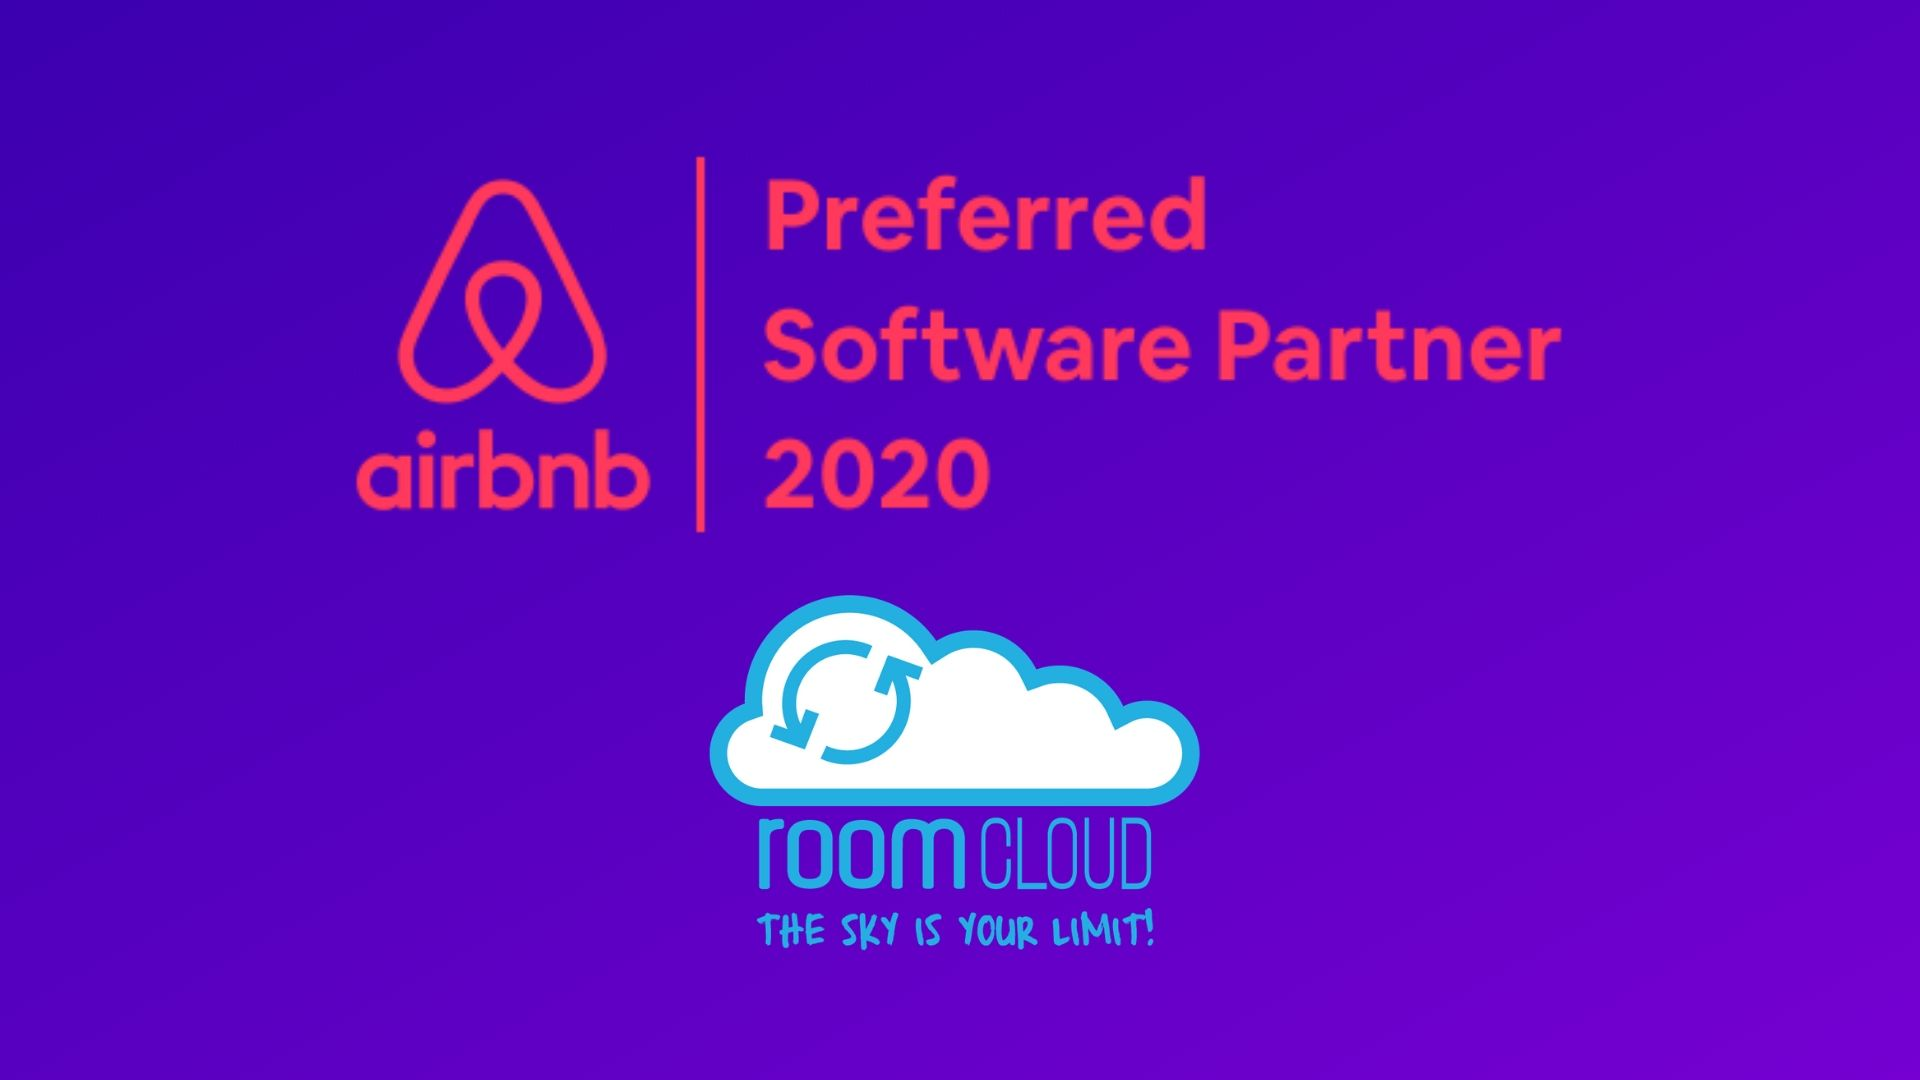 RoomCloud ist Airbnb Preferred Software Partner!